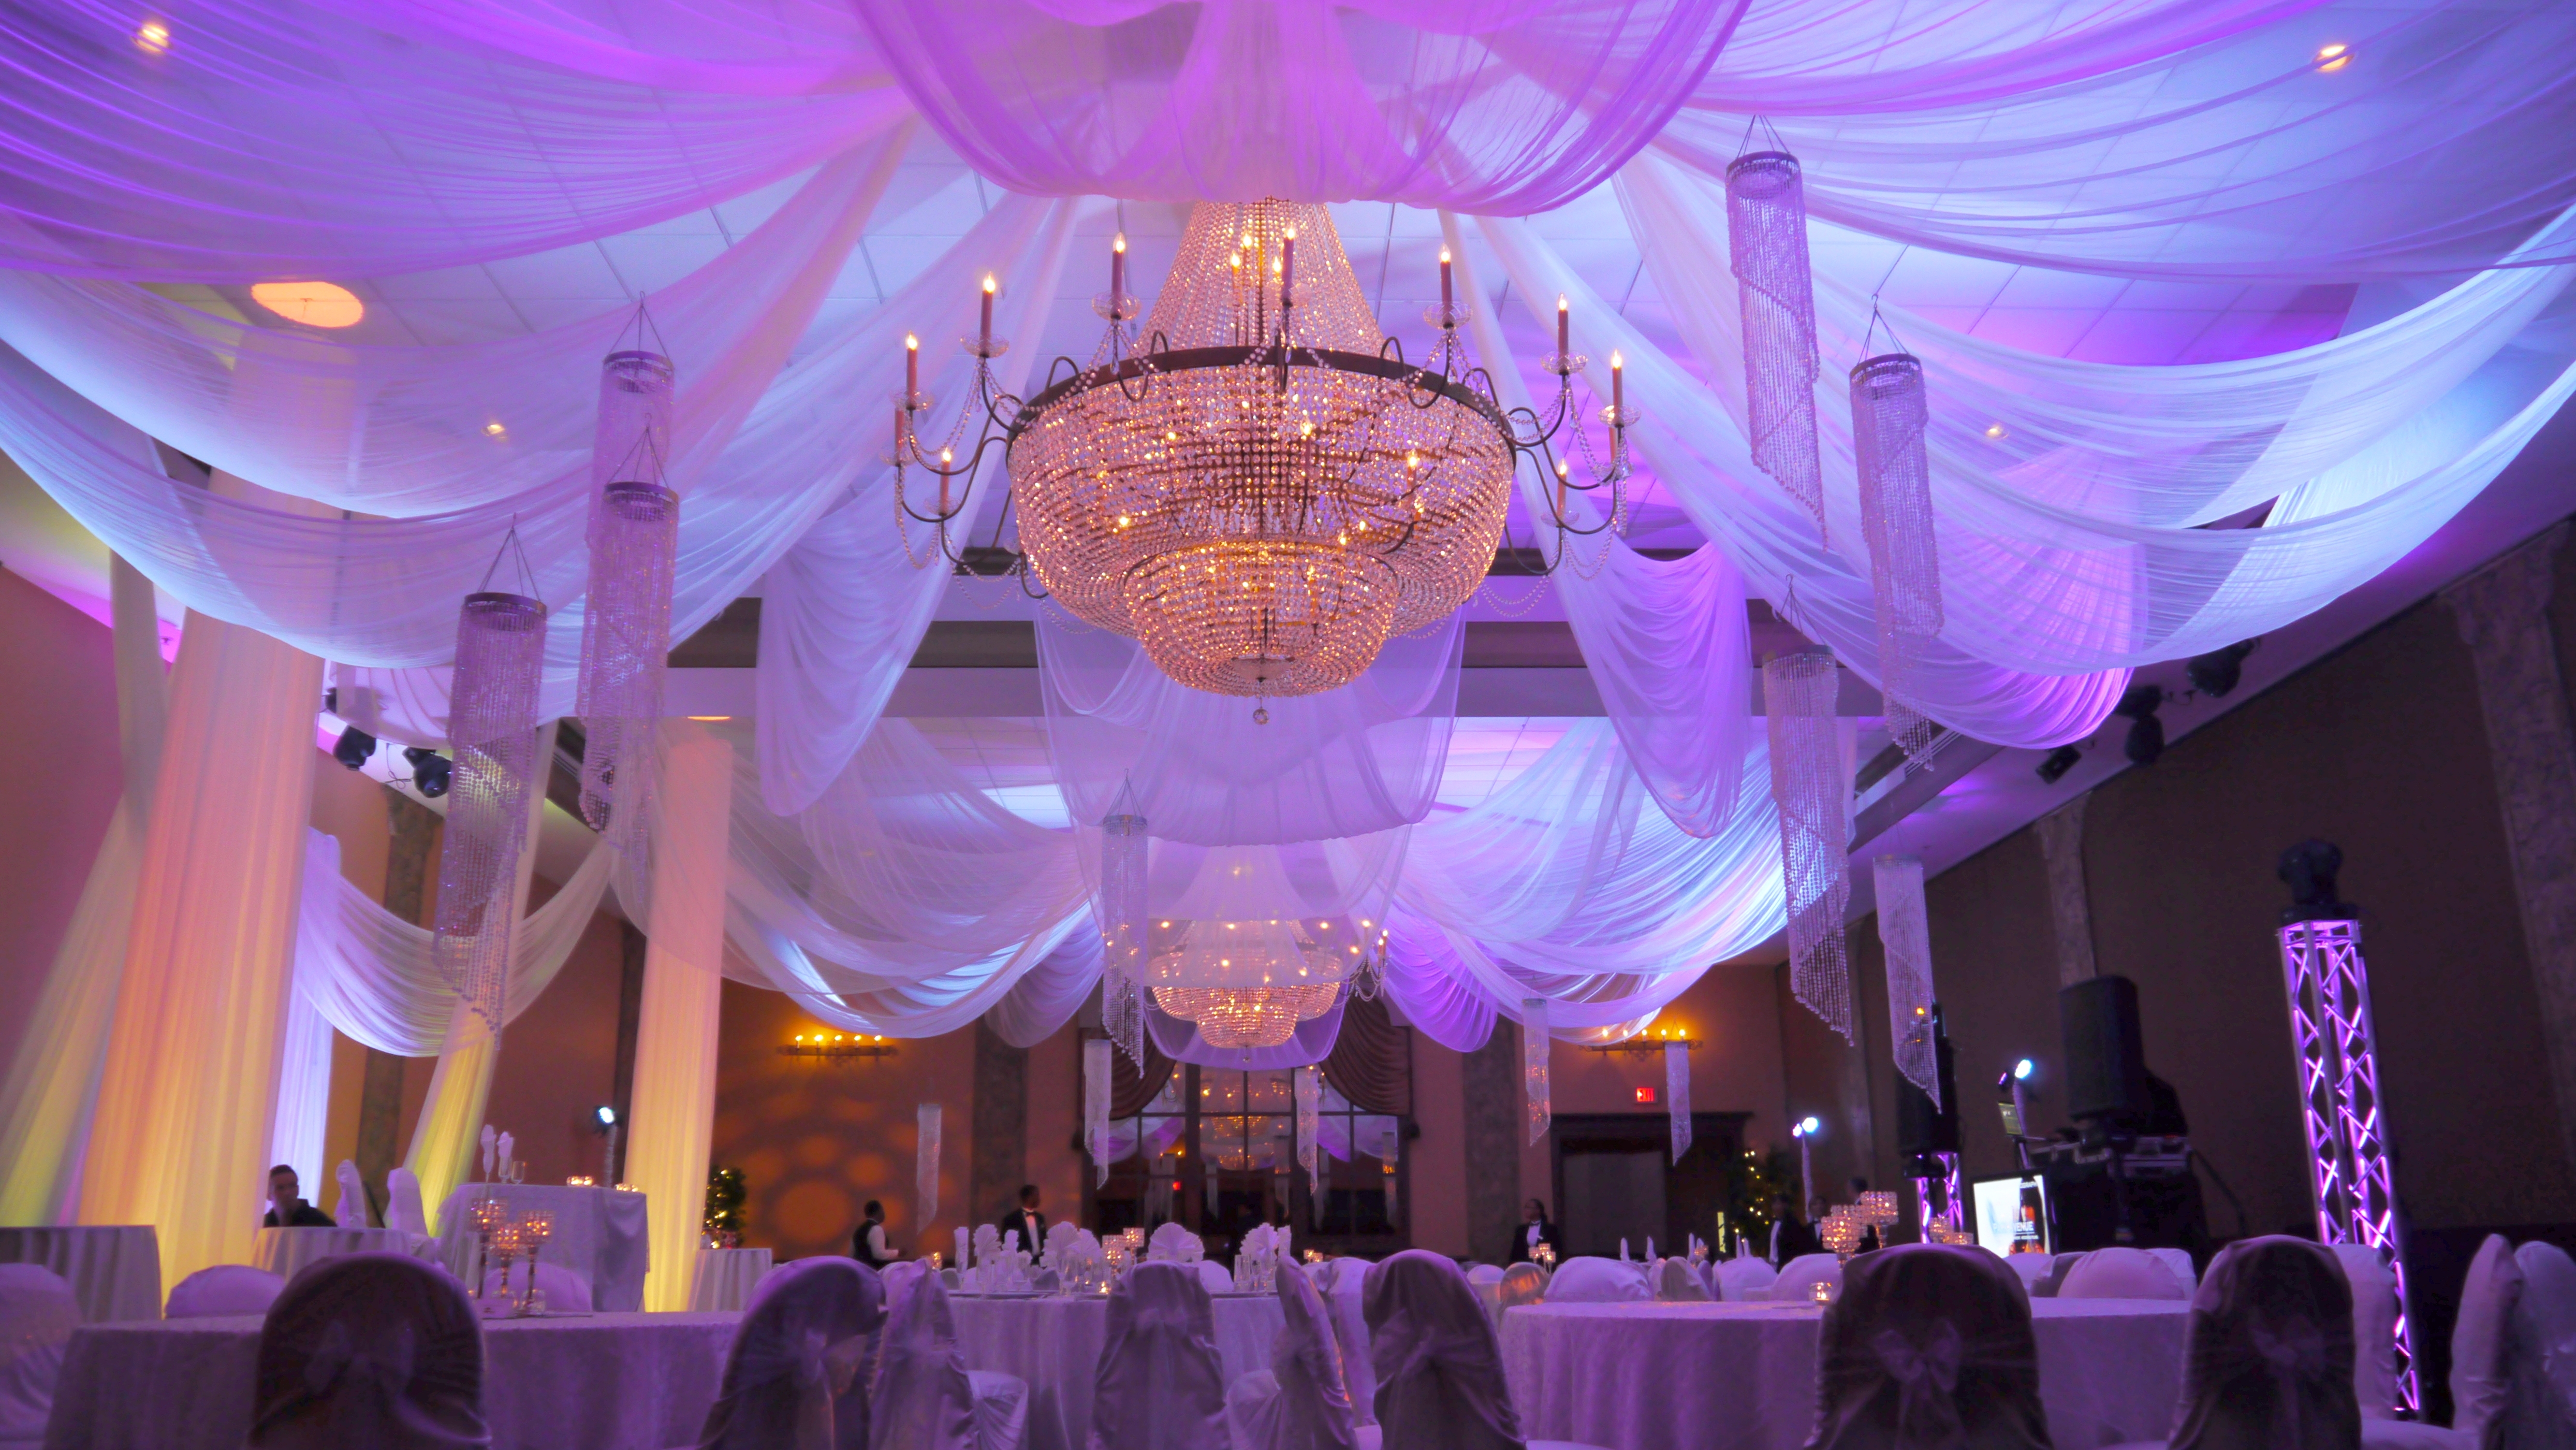 img tulum co how hang fabric for smsender drapes attaching events to ceiling swag